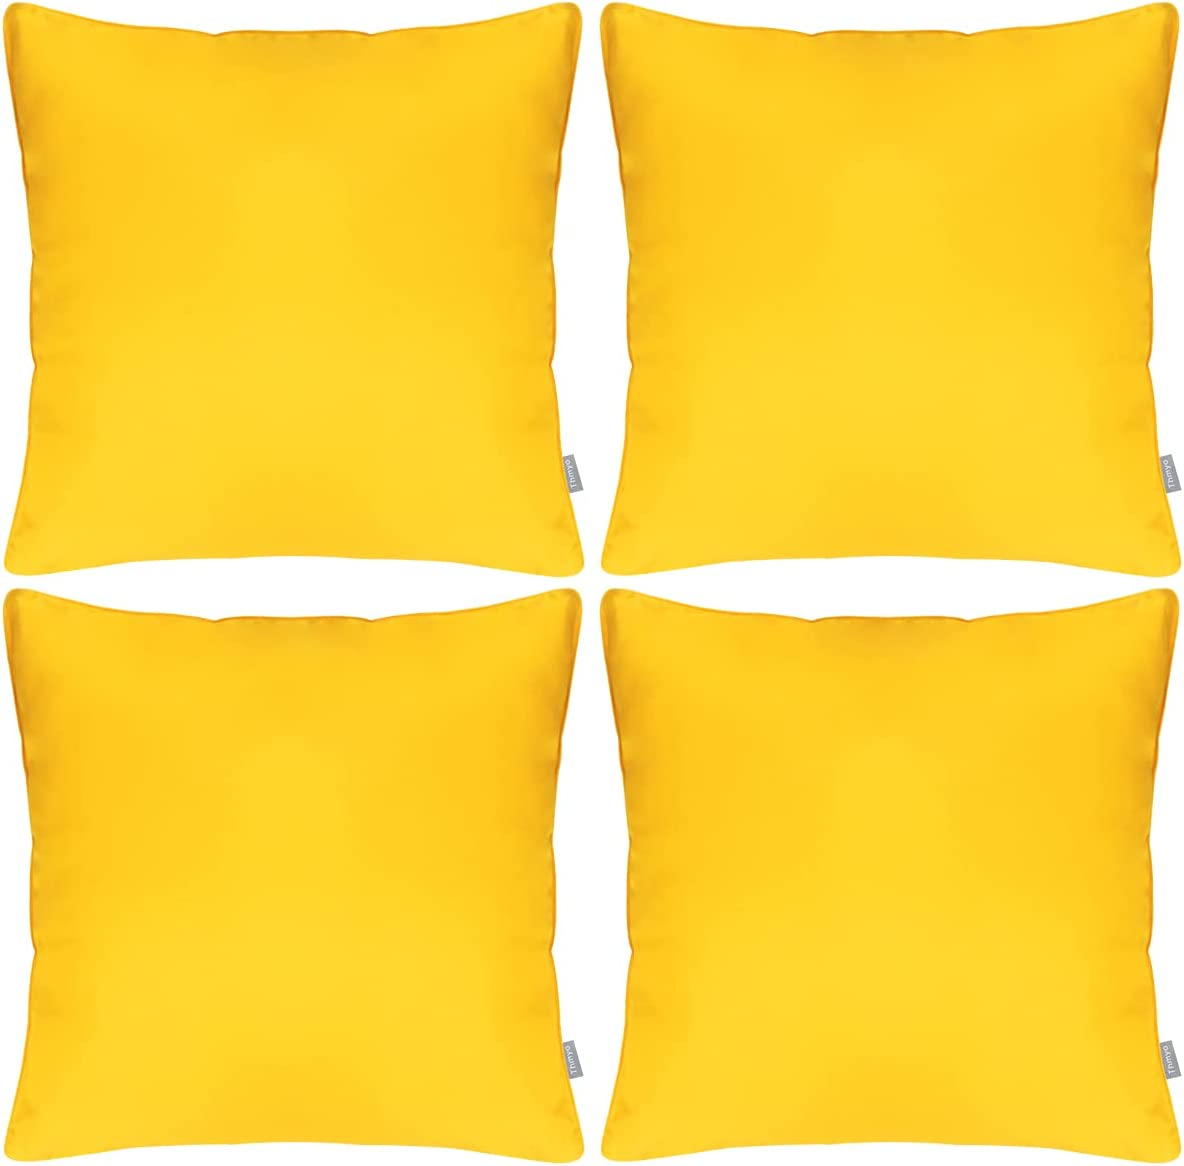 Set of 4 Outdoor Popular product Pillow Decorative Waterproof OFFicial site Covers Thr Square